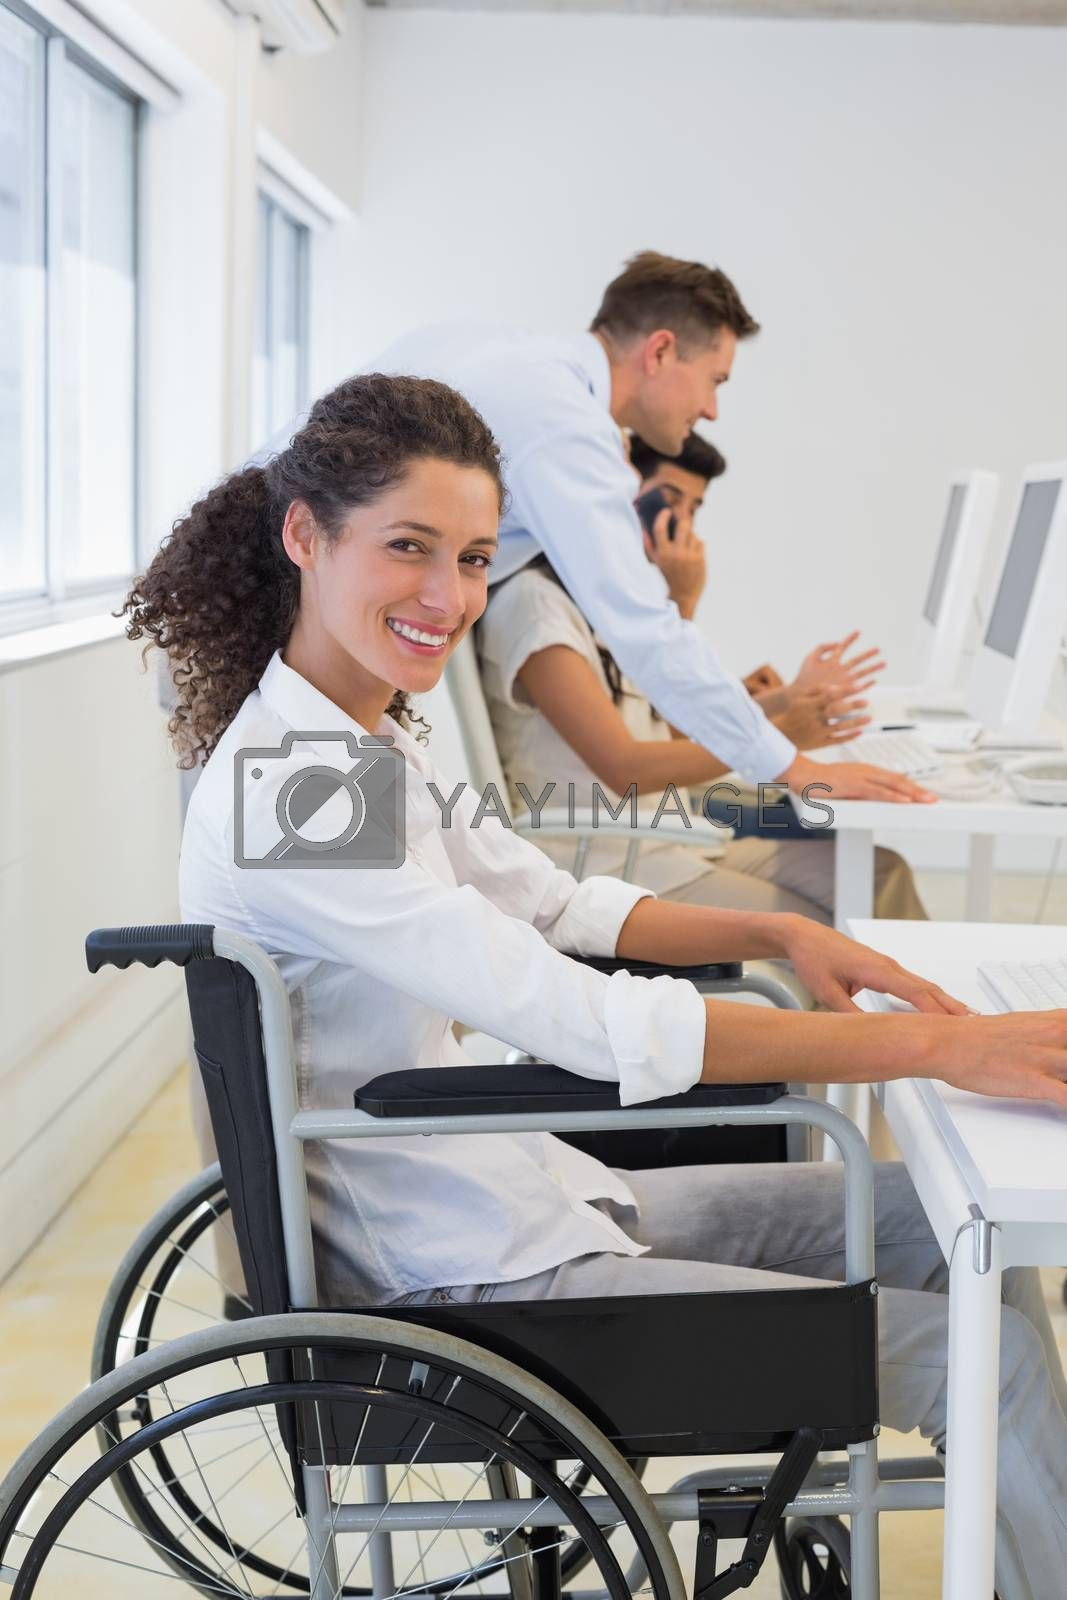 Royalty free image of Casual businesswoman in wheelchair working at her desk by Wavebreakmedia